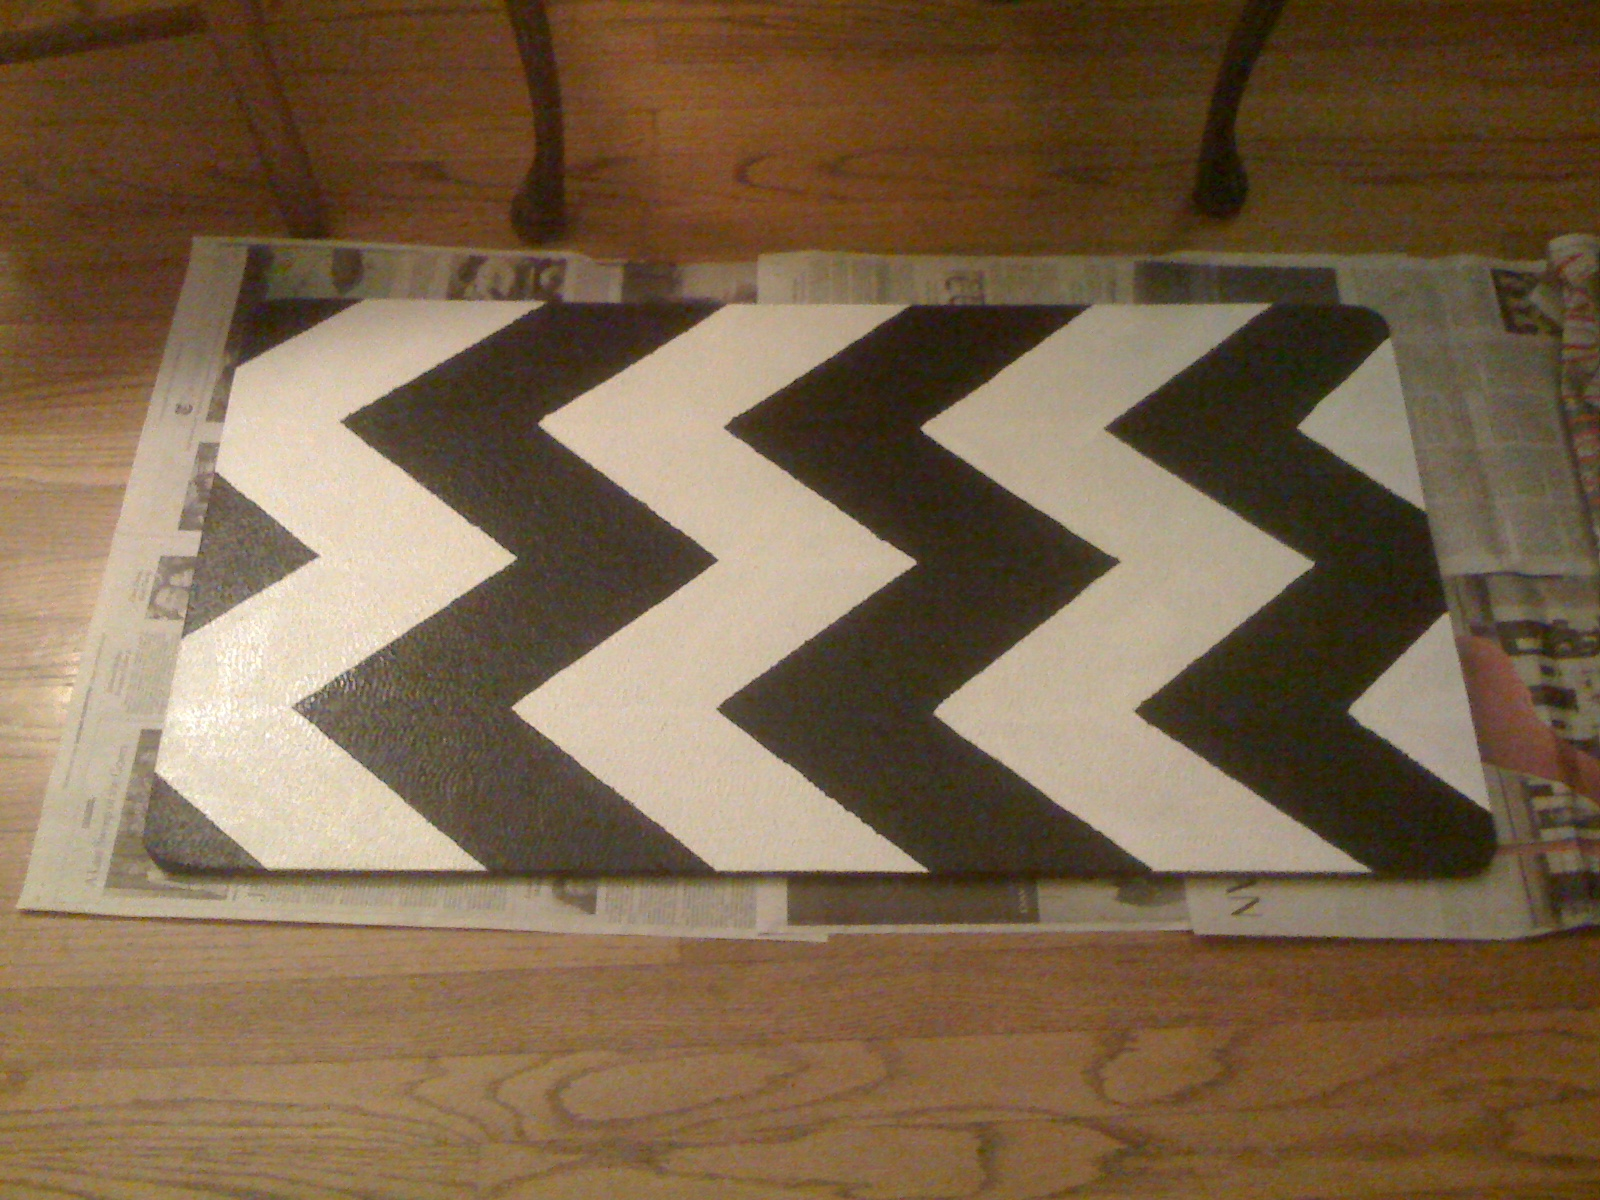 DIY: Painting Chevron Stripes on My Kitchen Rug | Mary ...